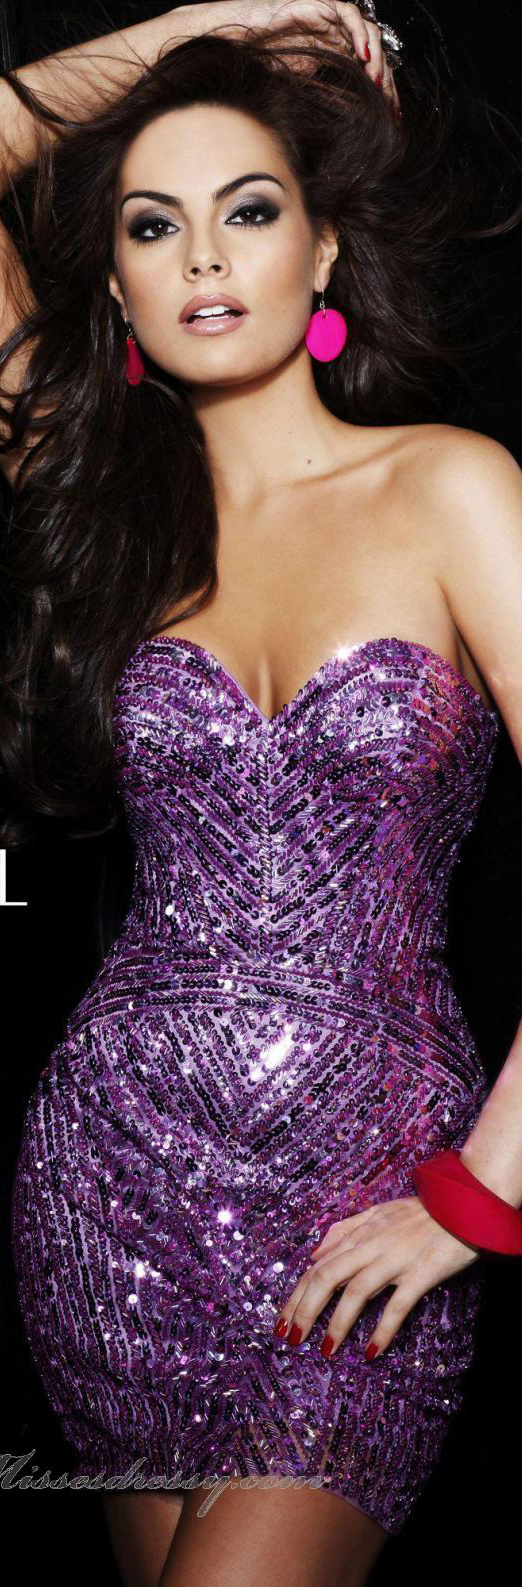 Strapless Sweetheart Cocktail Dress by Sherri Hill <3 reminds me of waiting for tonight by j lo